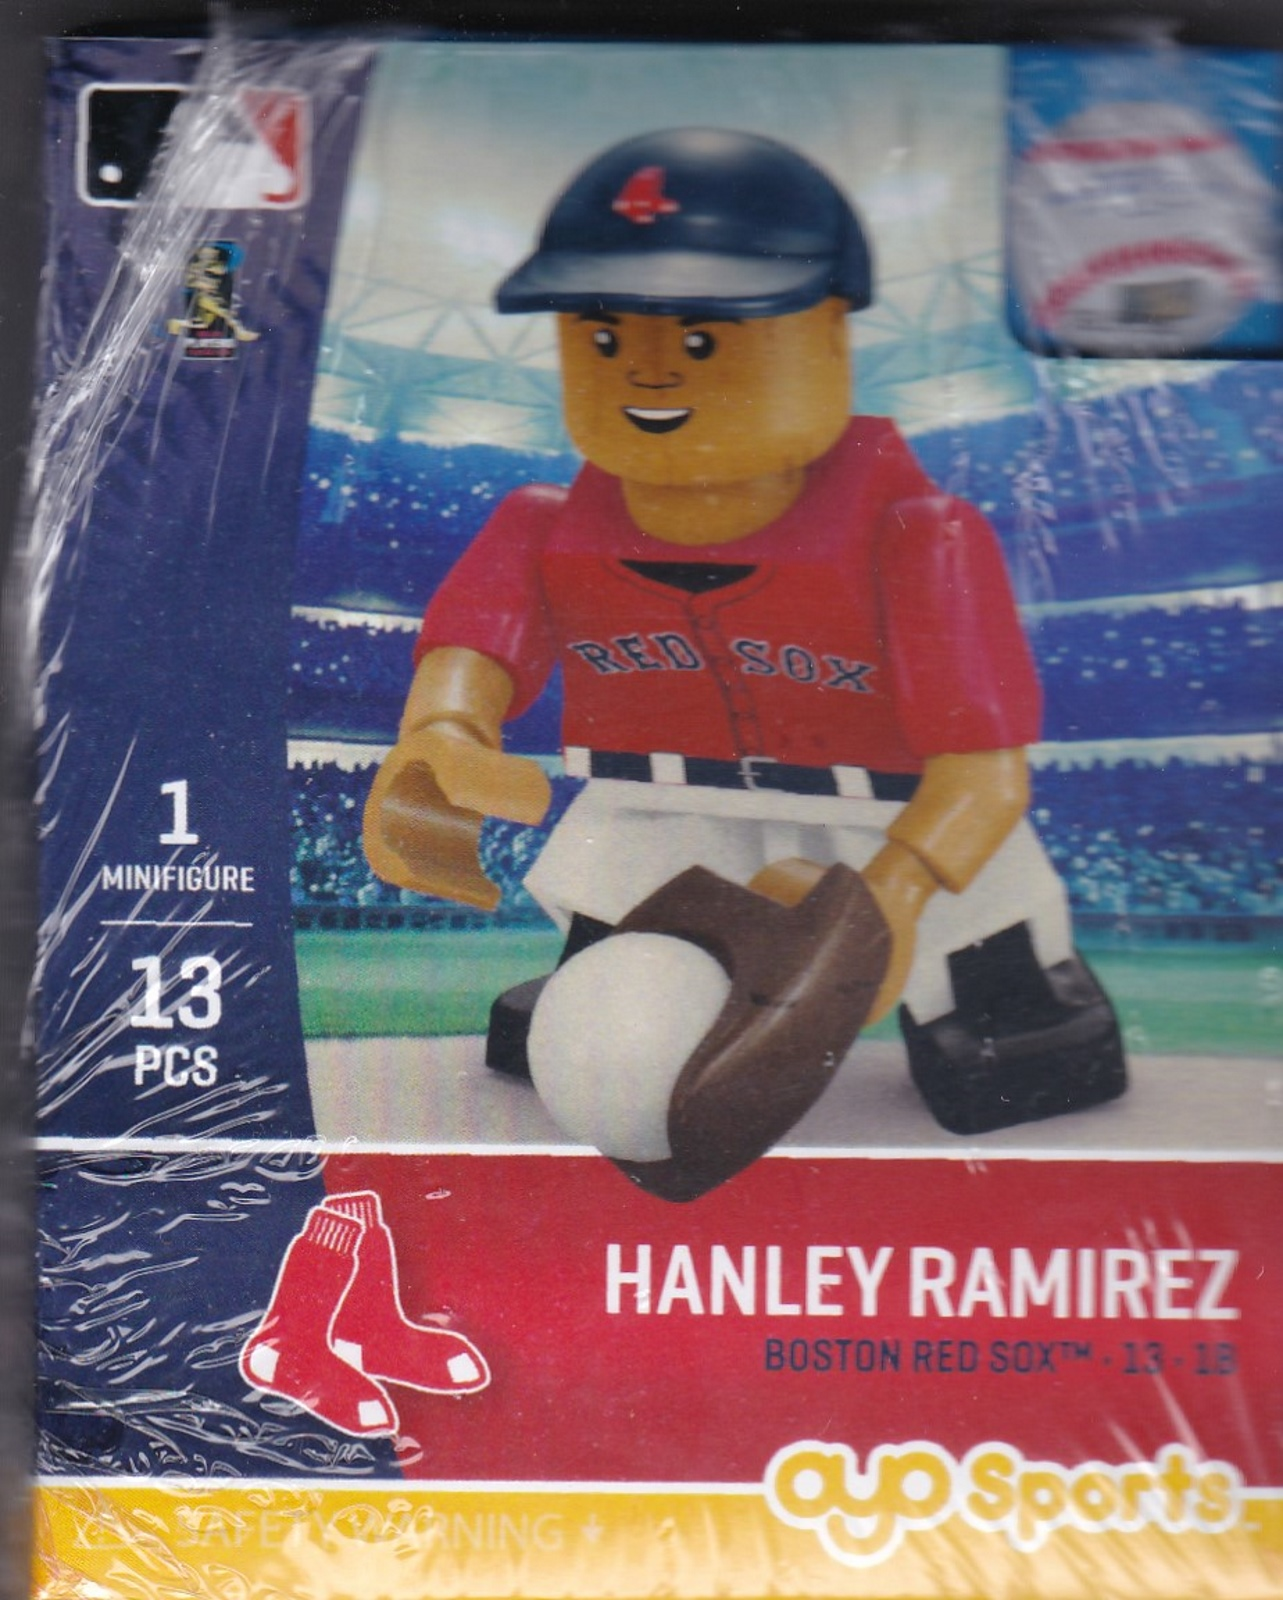 Hanley Ramirez 1B OYO Baseball figure Generation 5 Series 2 Boston Red Sox